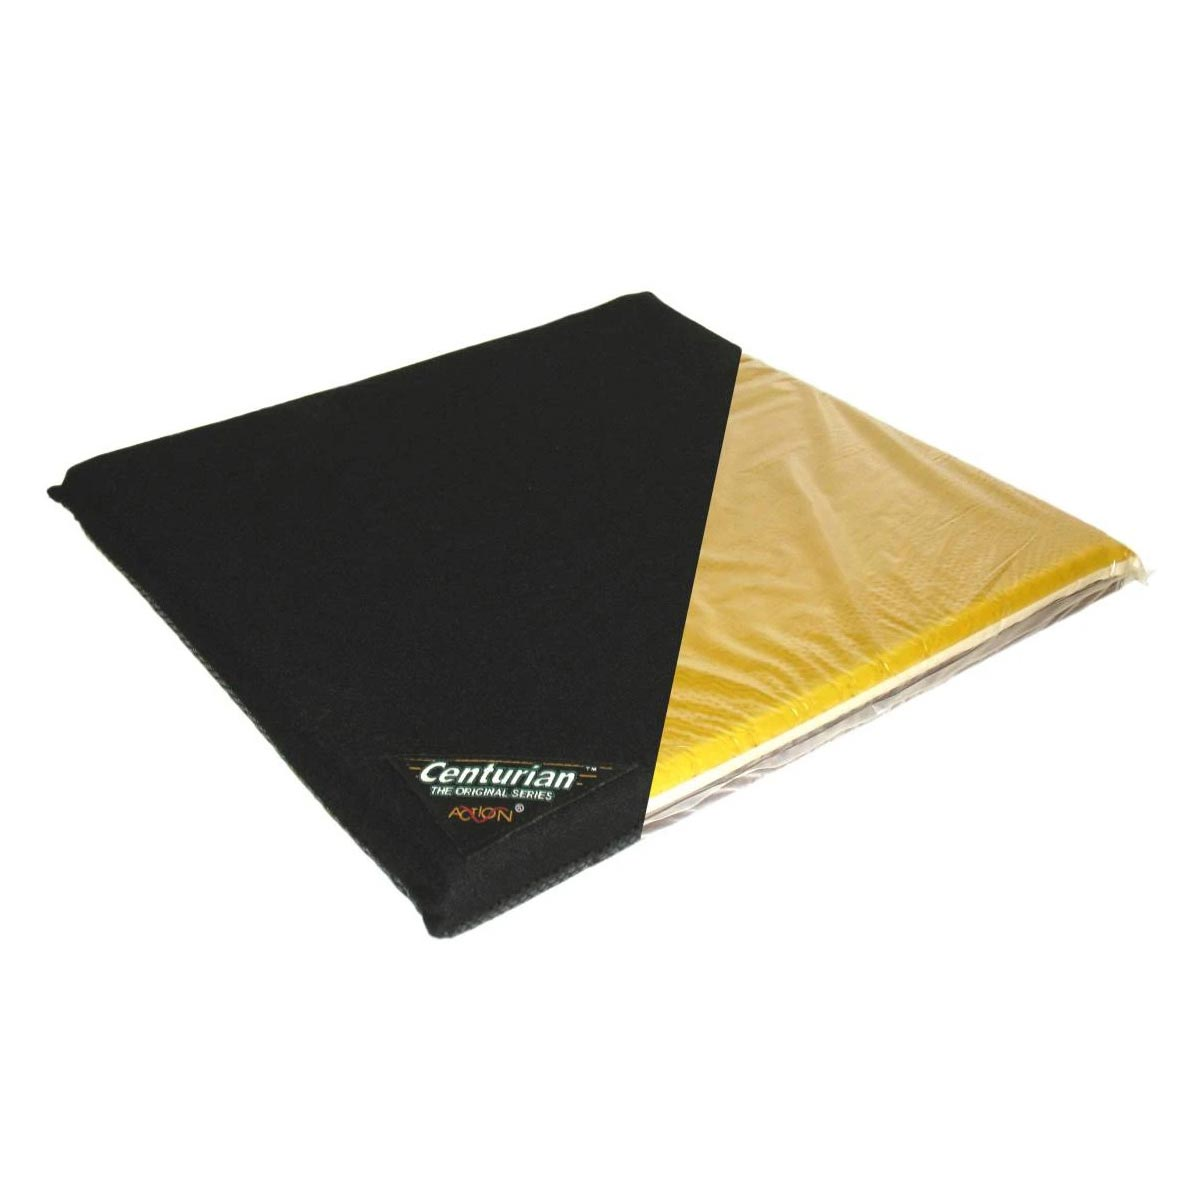 Action Products Centurian cushion